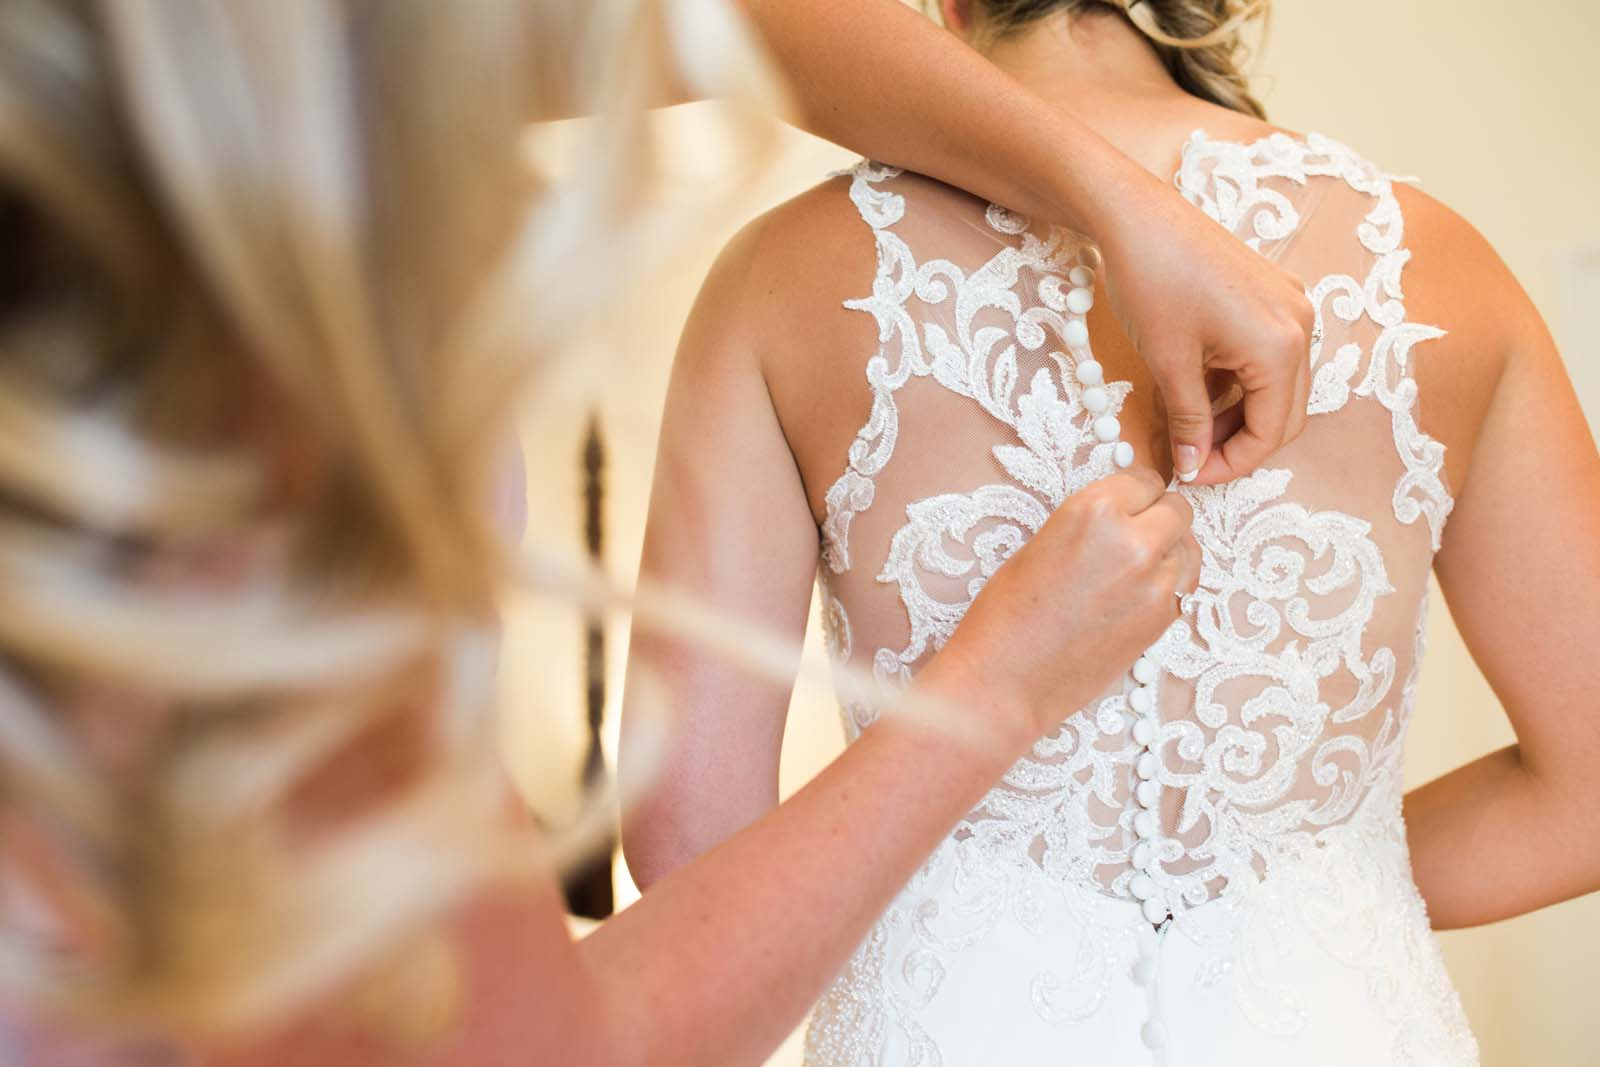 Notley Abbey wedding in Buckinghamshire final touches to the dress